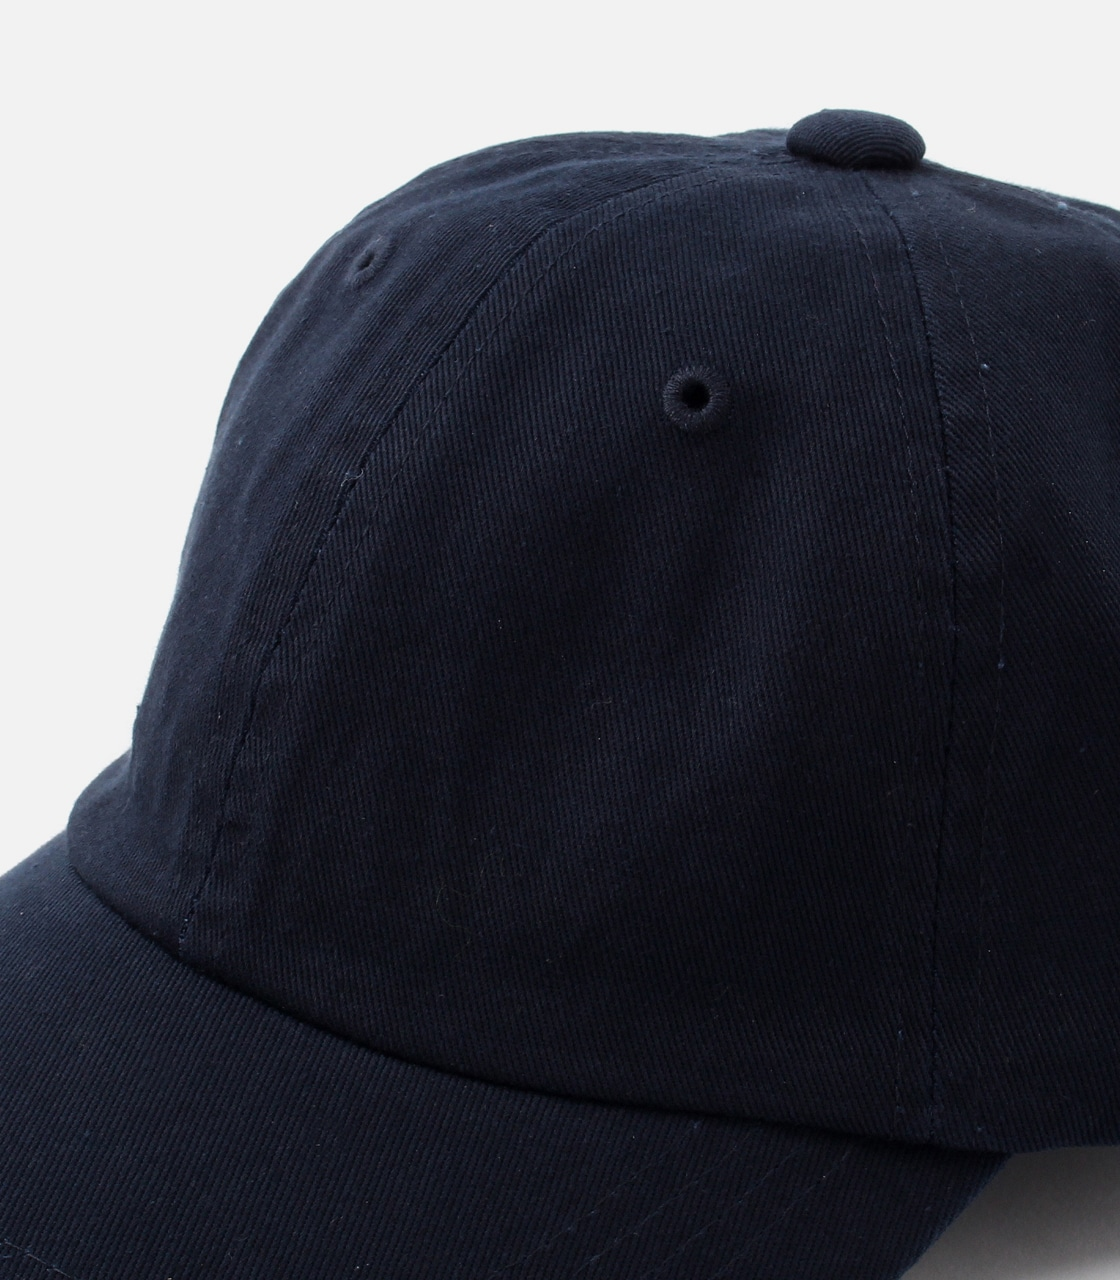 【AZUL BY MOUSSY】BASIC TWILL CAP 【MOOK49掲載 90020】 詳細画像 NVY 6